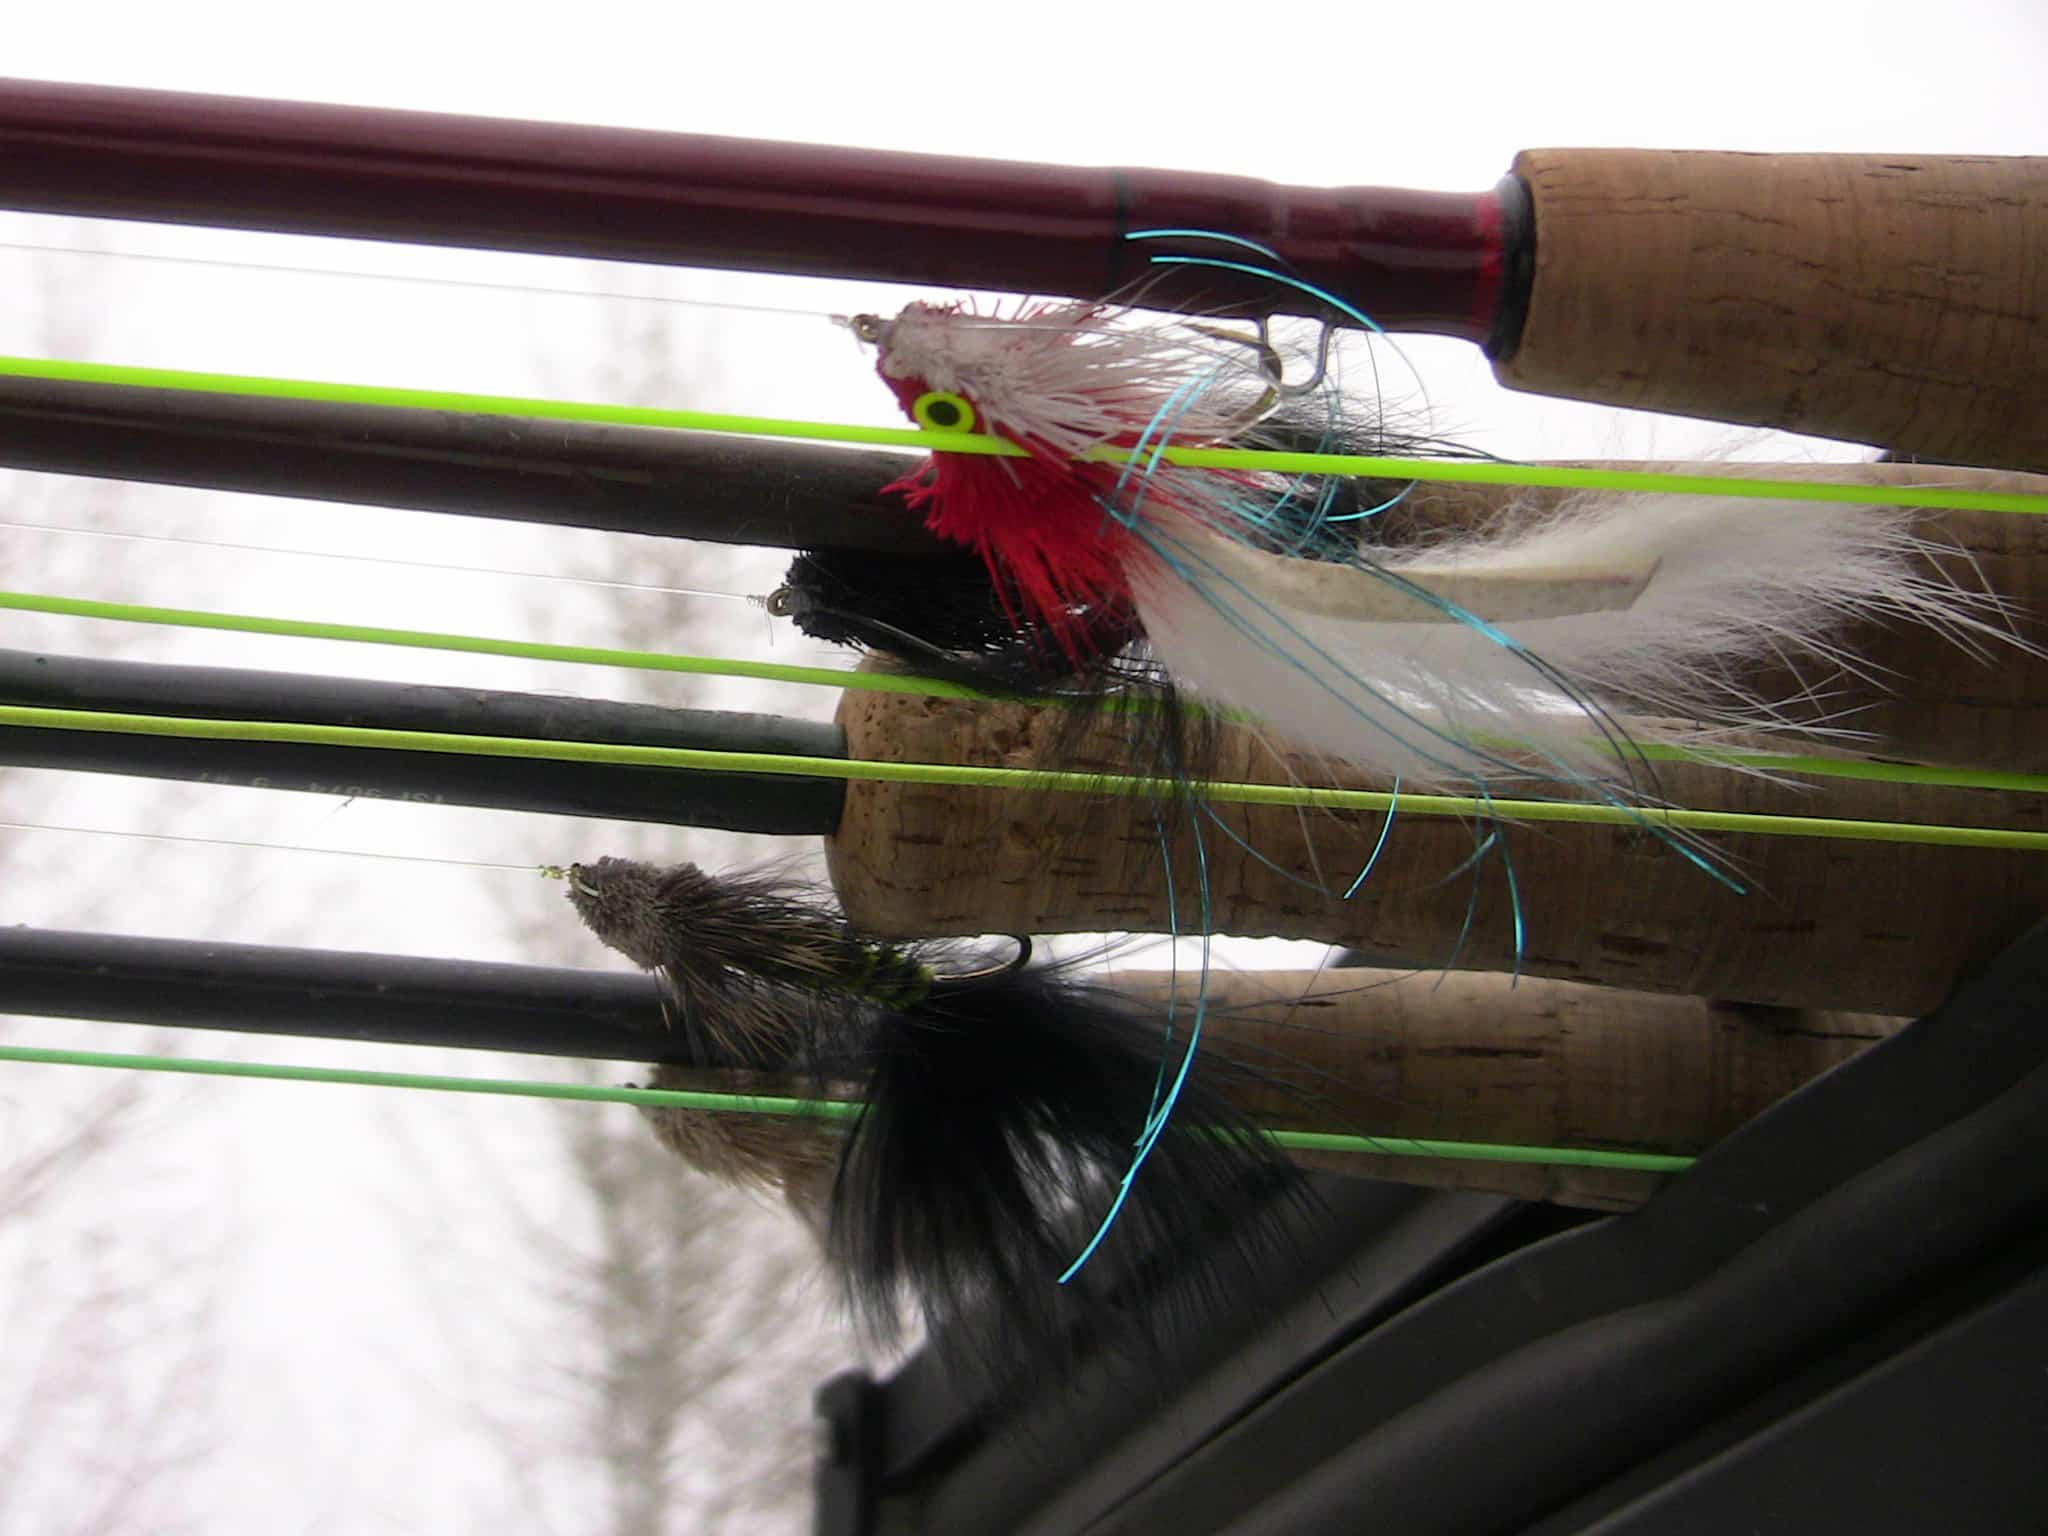 Fishing streamers rigged up for spring trout.